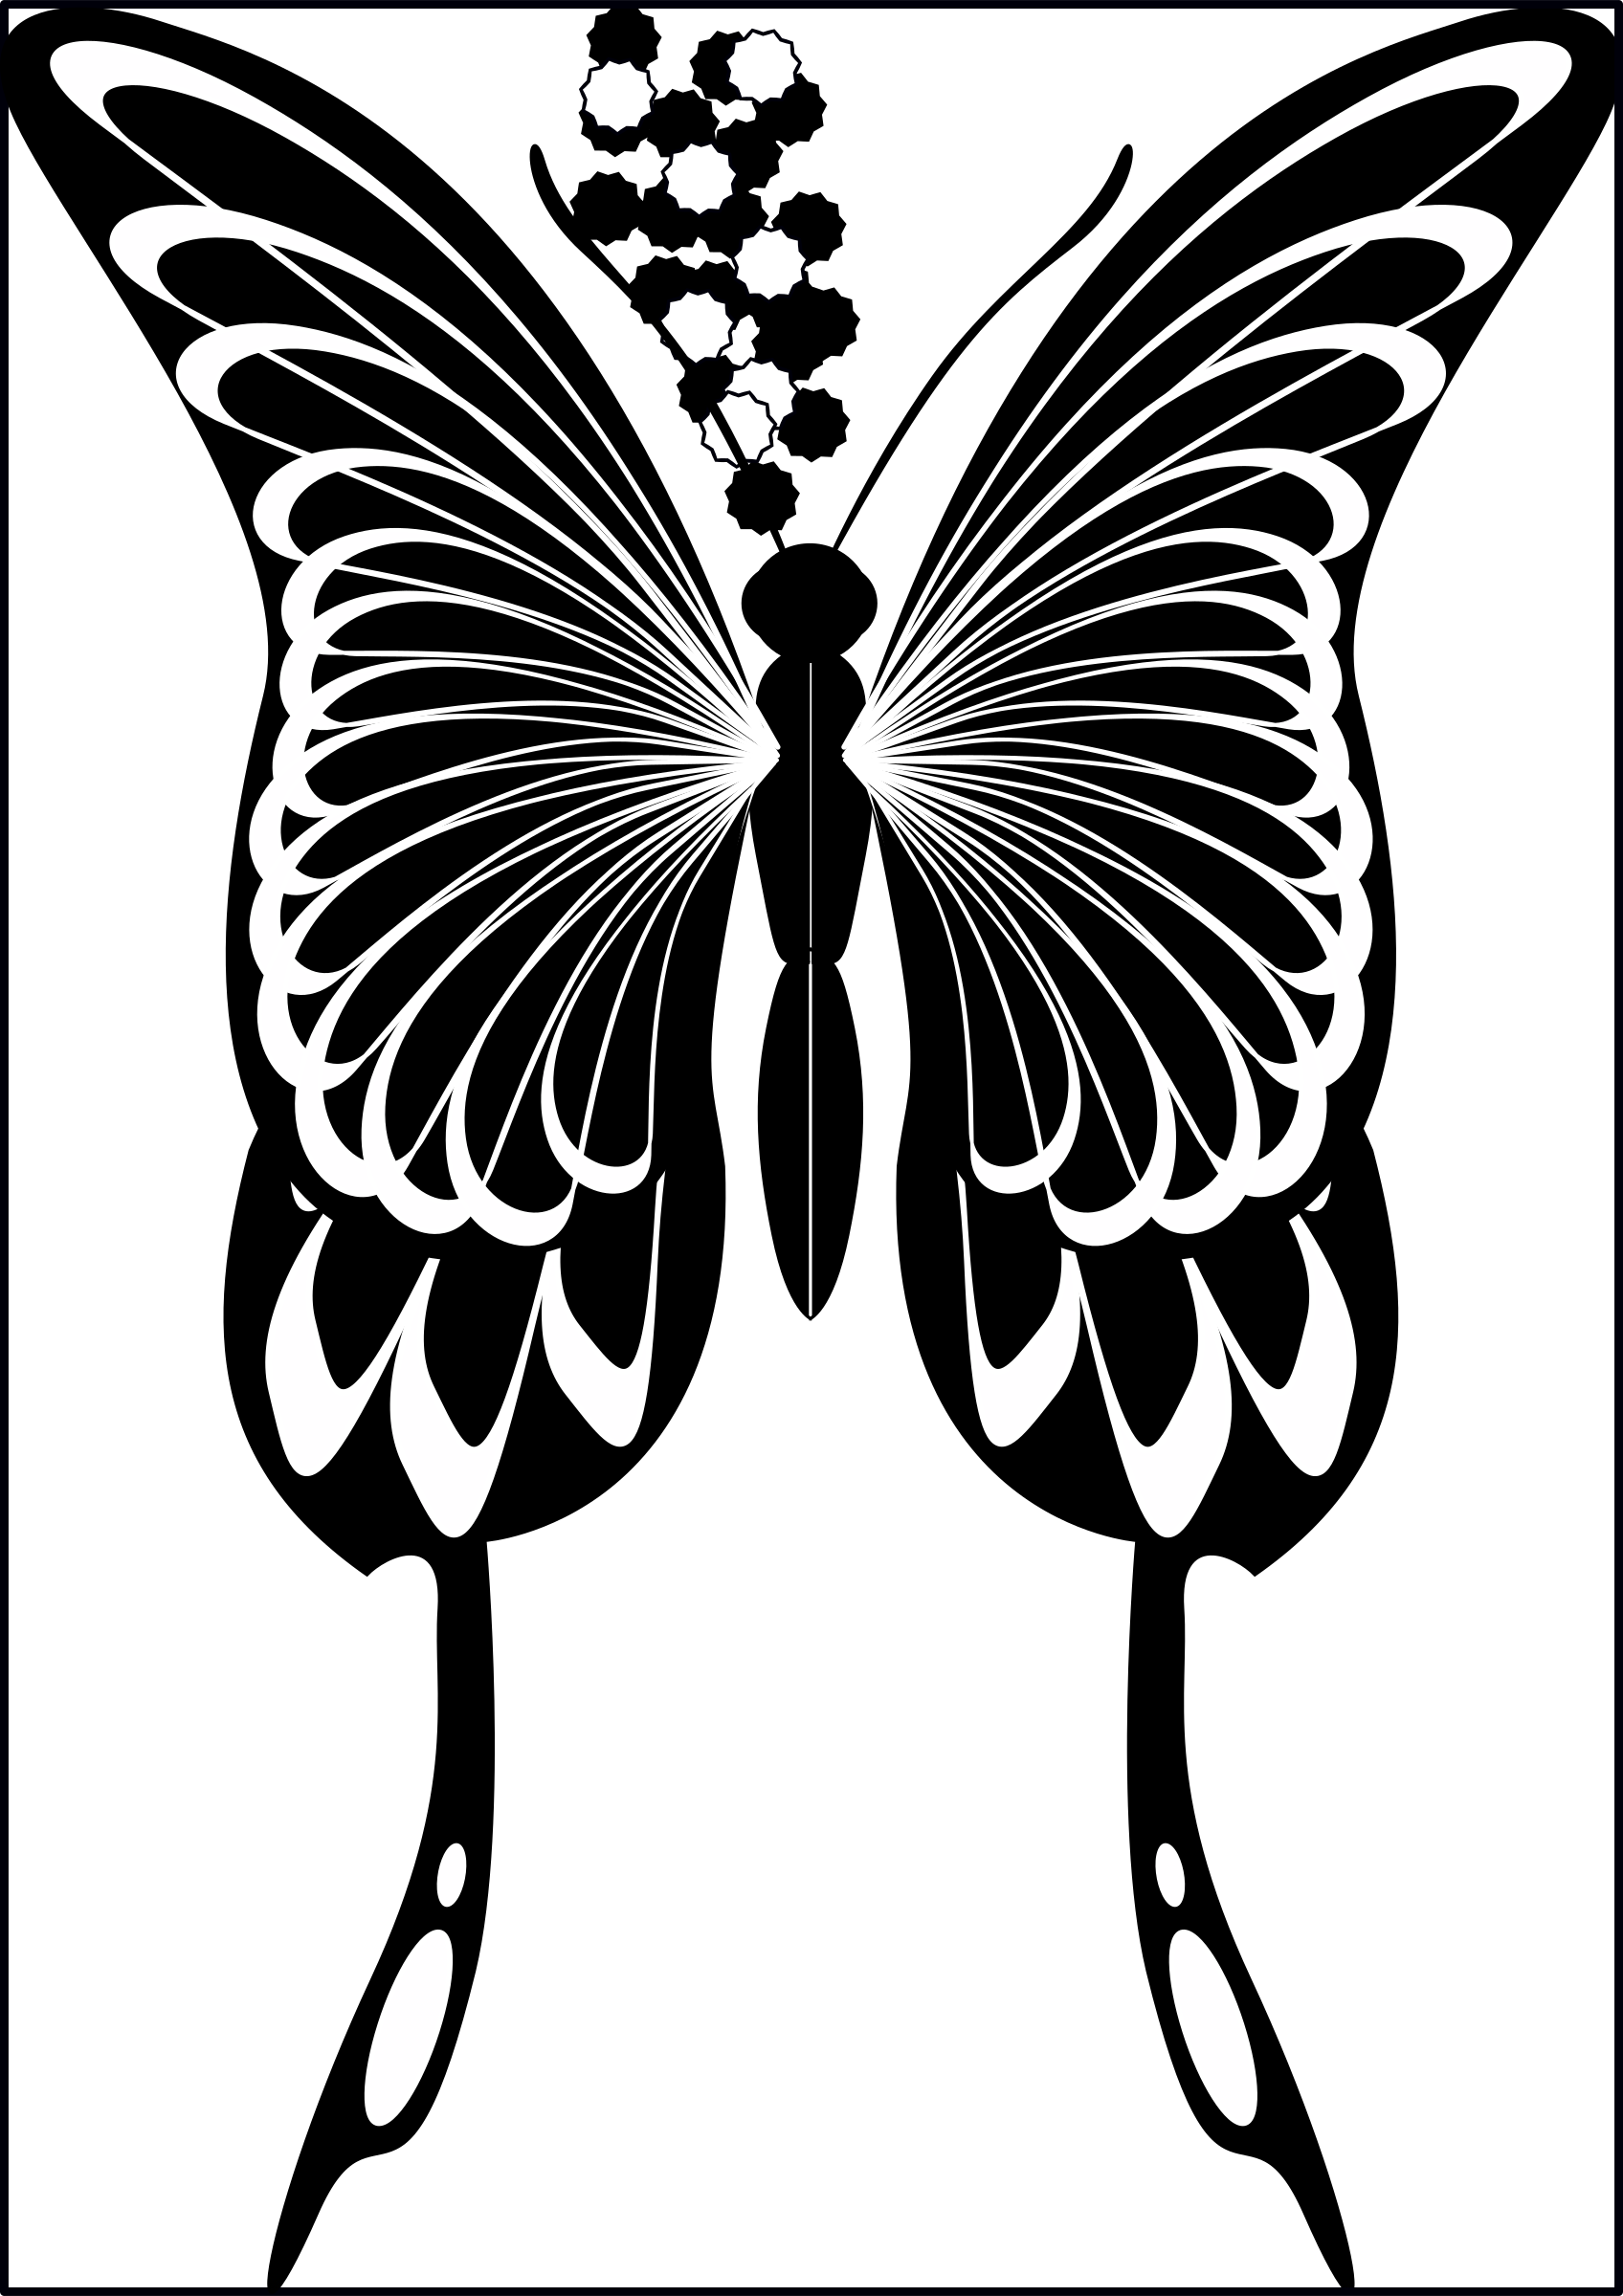 Silhouette, Black Swallowtail by imdeggman